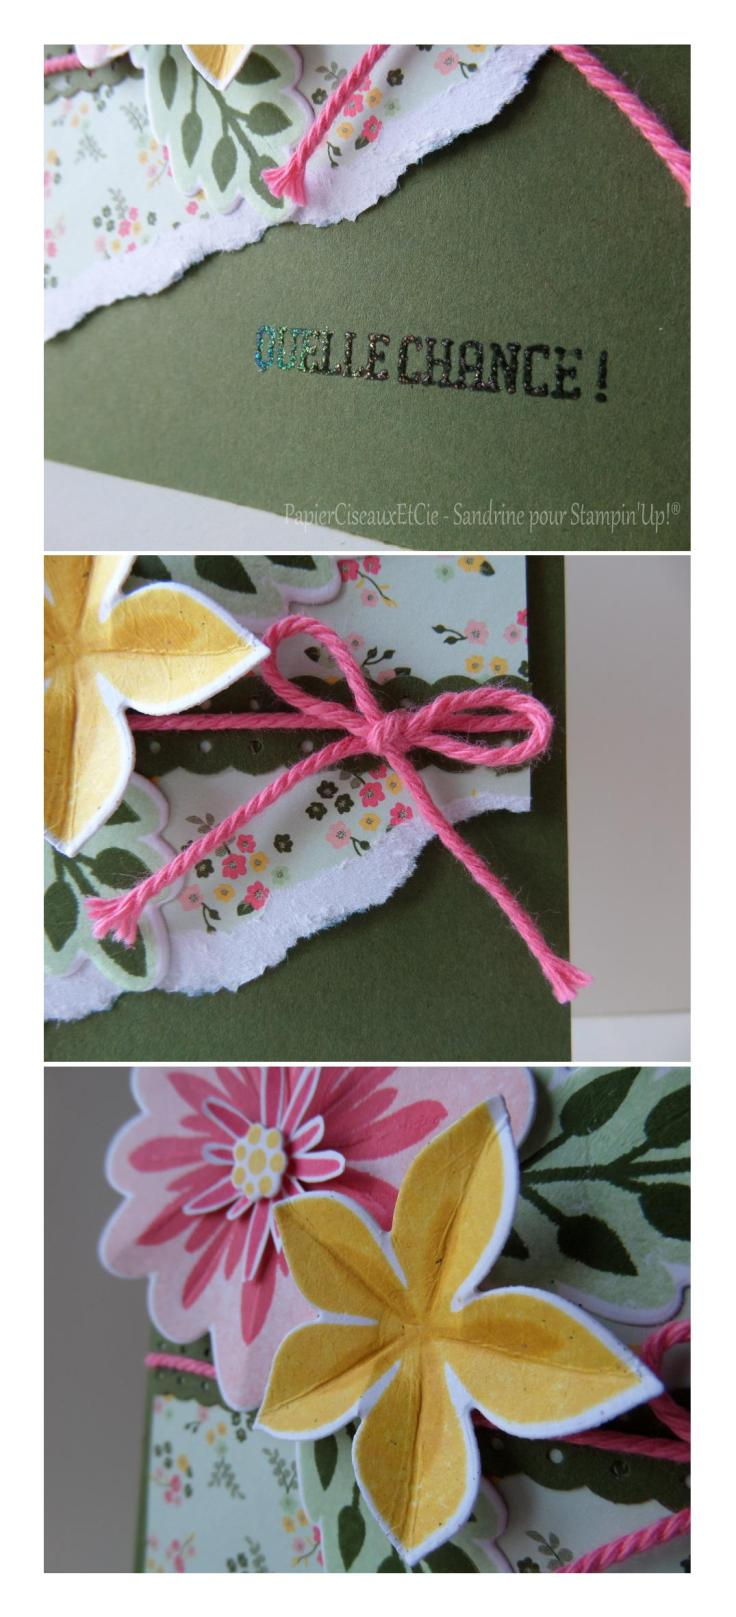 tag brune dune papierciseauxetcie stampin up details